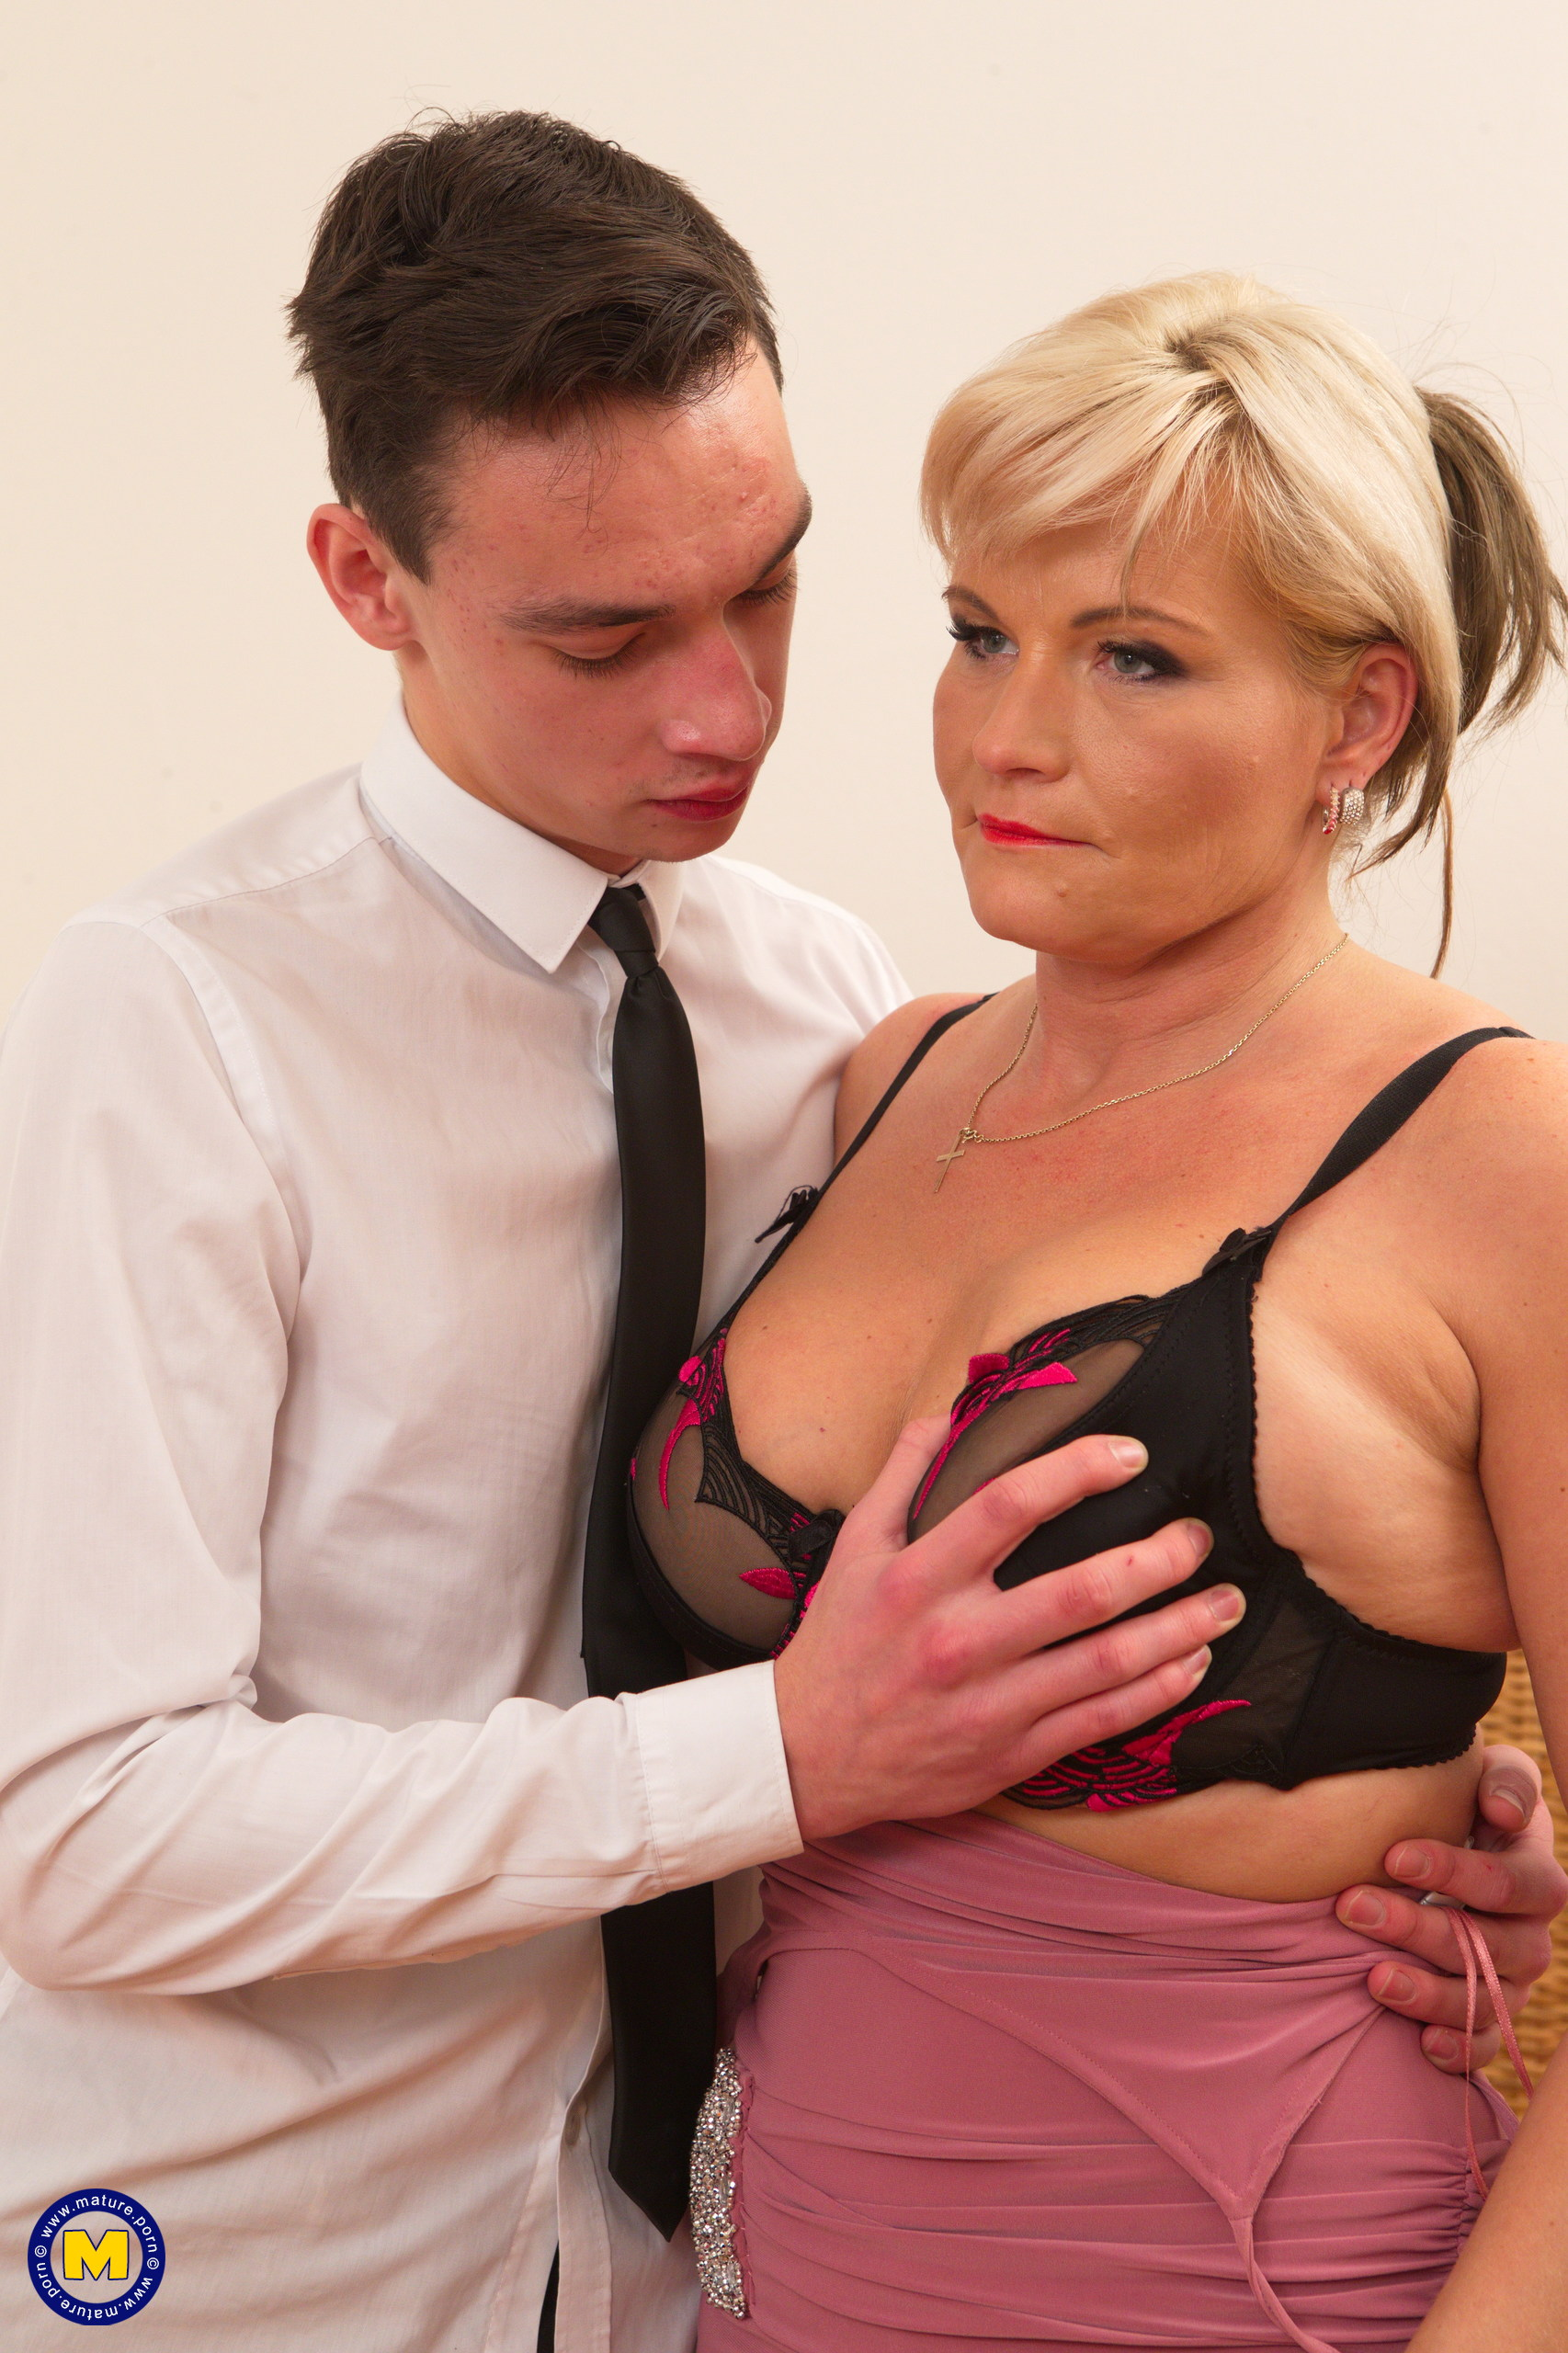 the best free sex training for a young stud by an experienced sexy business granny #1